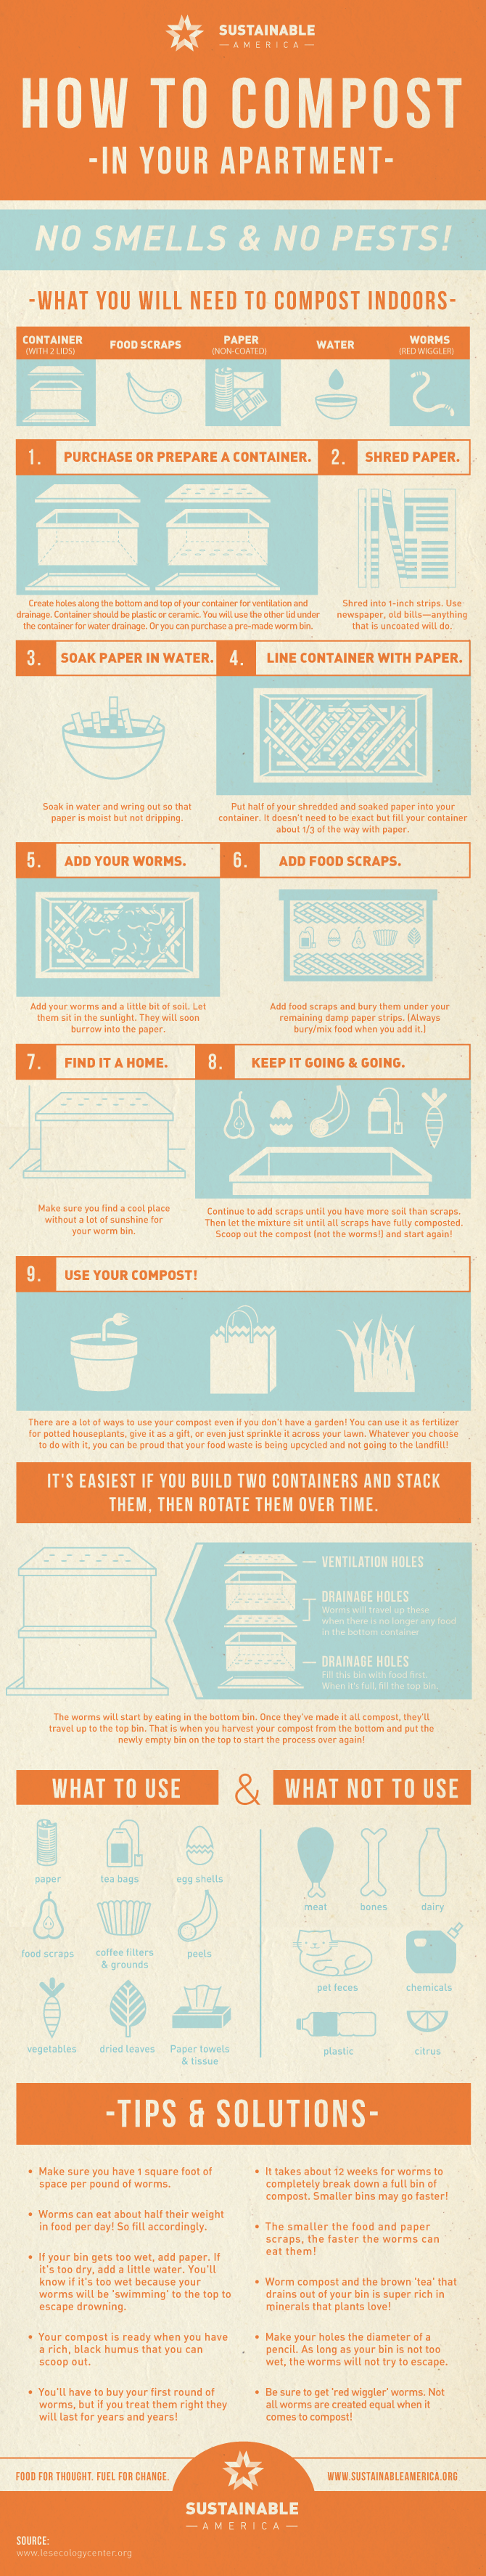 How to compost in your apartment infographic